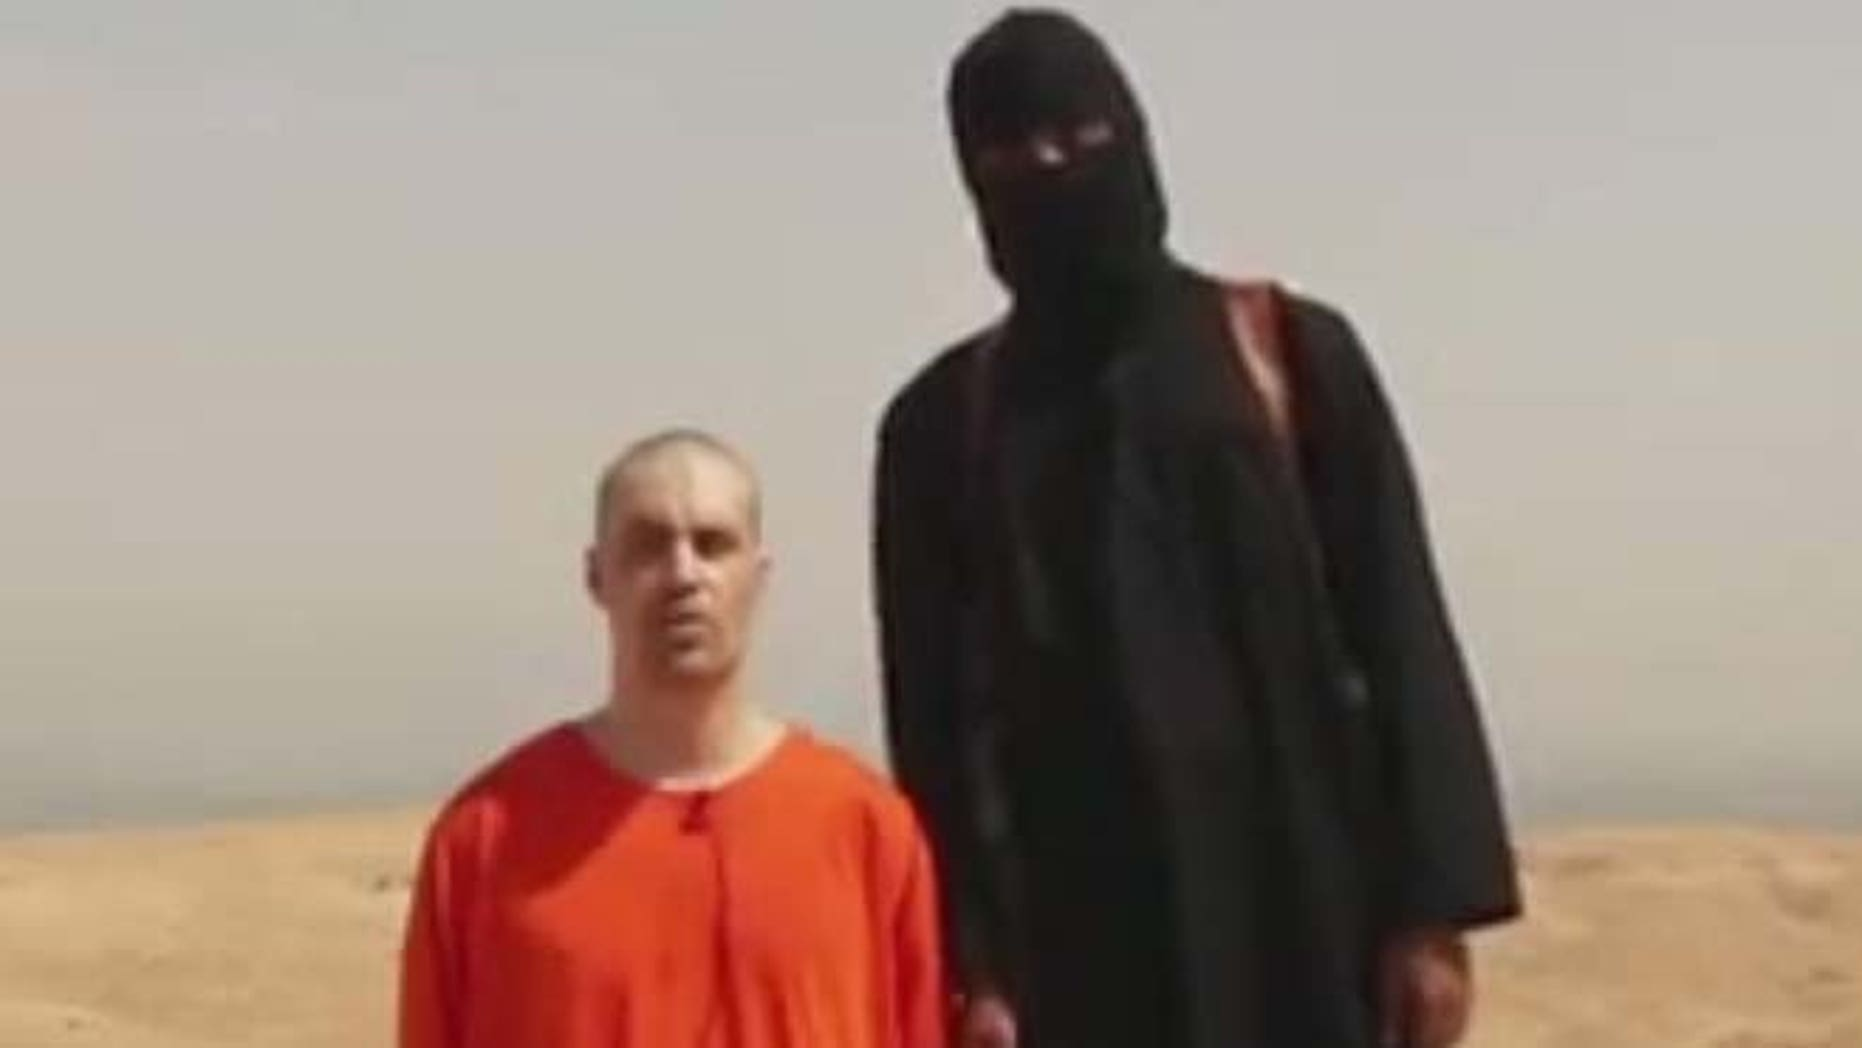 This undated image shows a frame from a video released by Islamic State militants that purports to show the killing of journalist James Foley by the militant group. Foley, from Rochester, N.H., disappeared in 2012 in northern Syria while on assignment for Agence France-Press and the Boston-based media company GlobalPost.